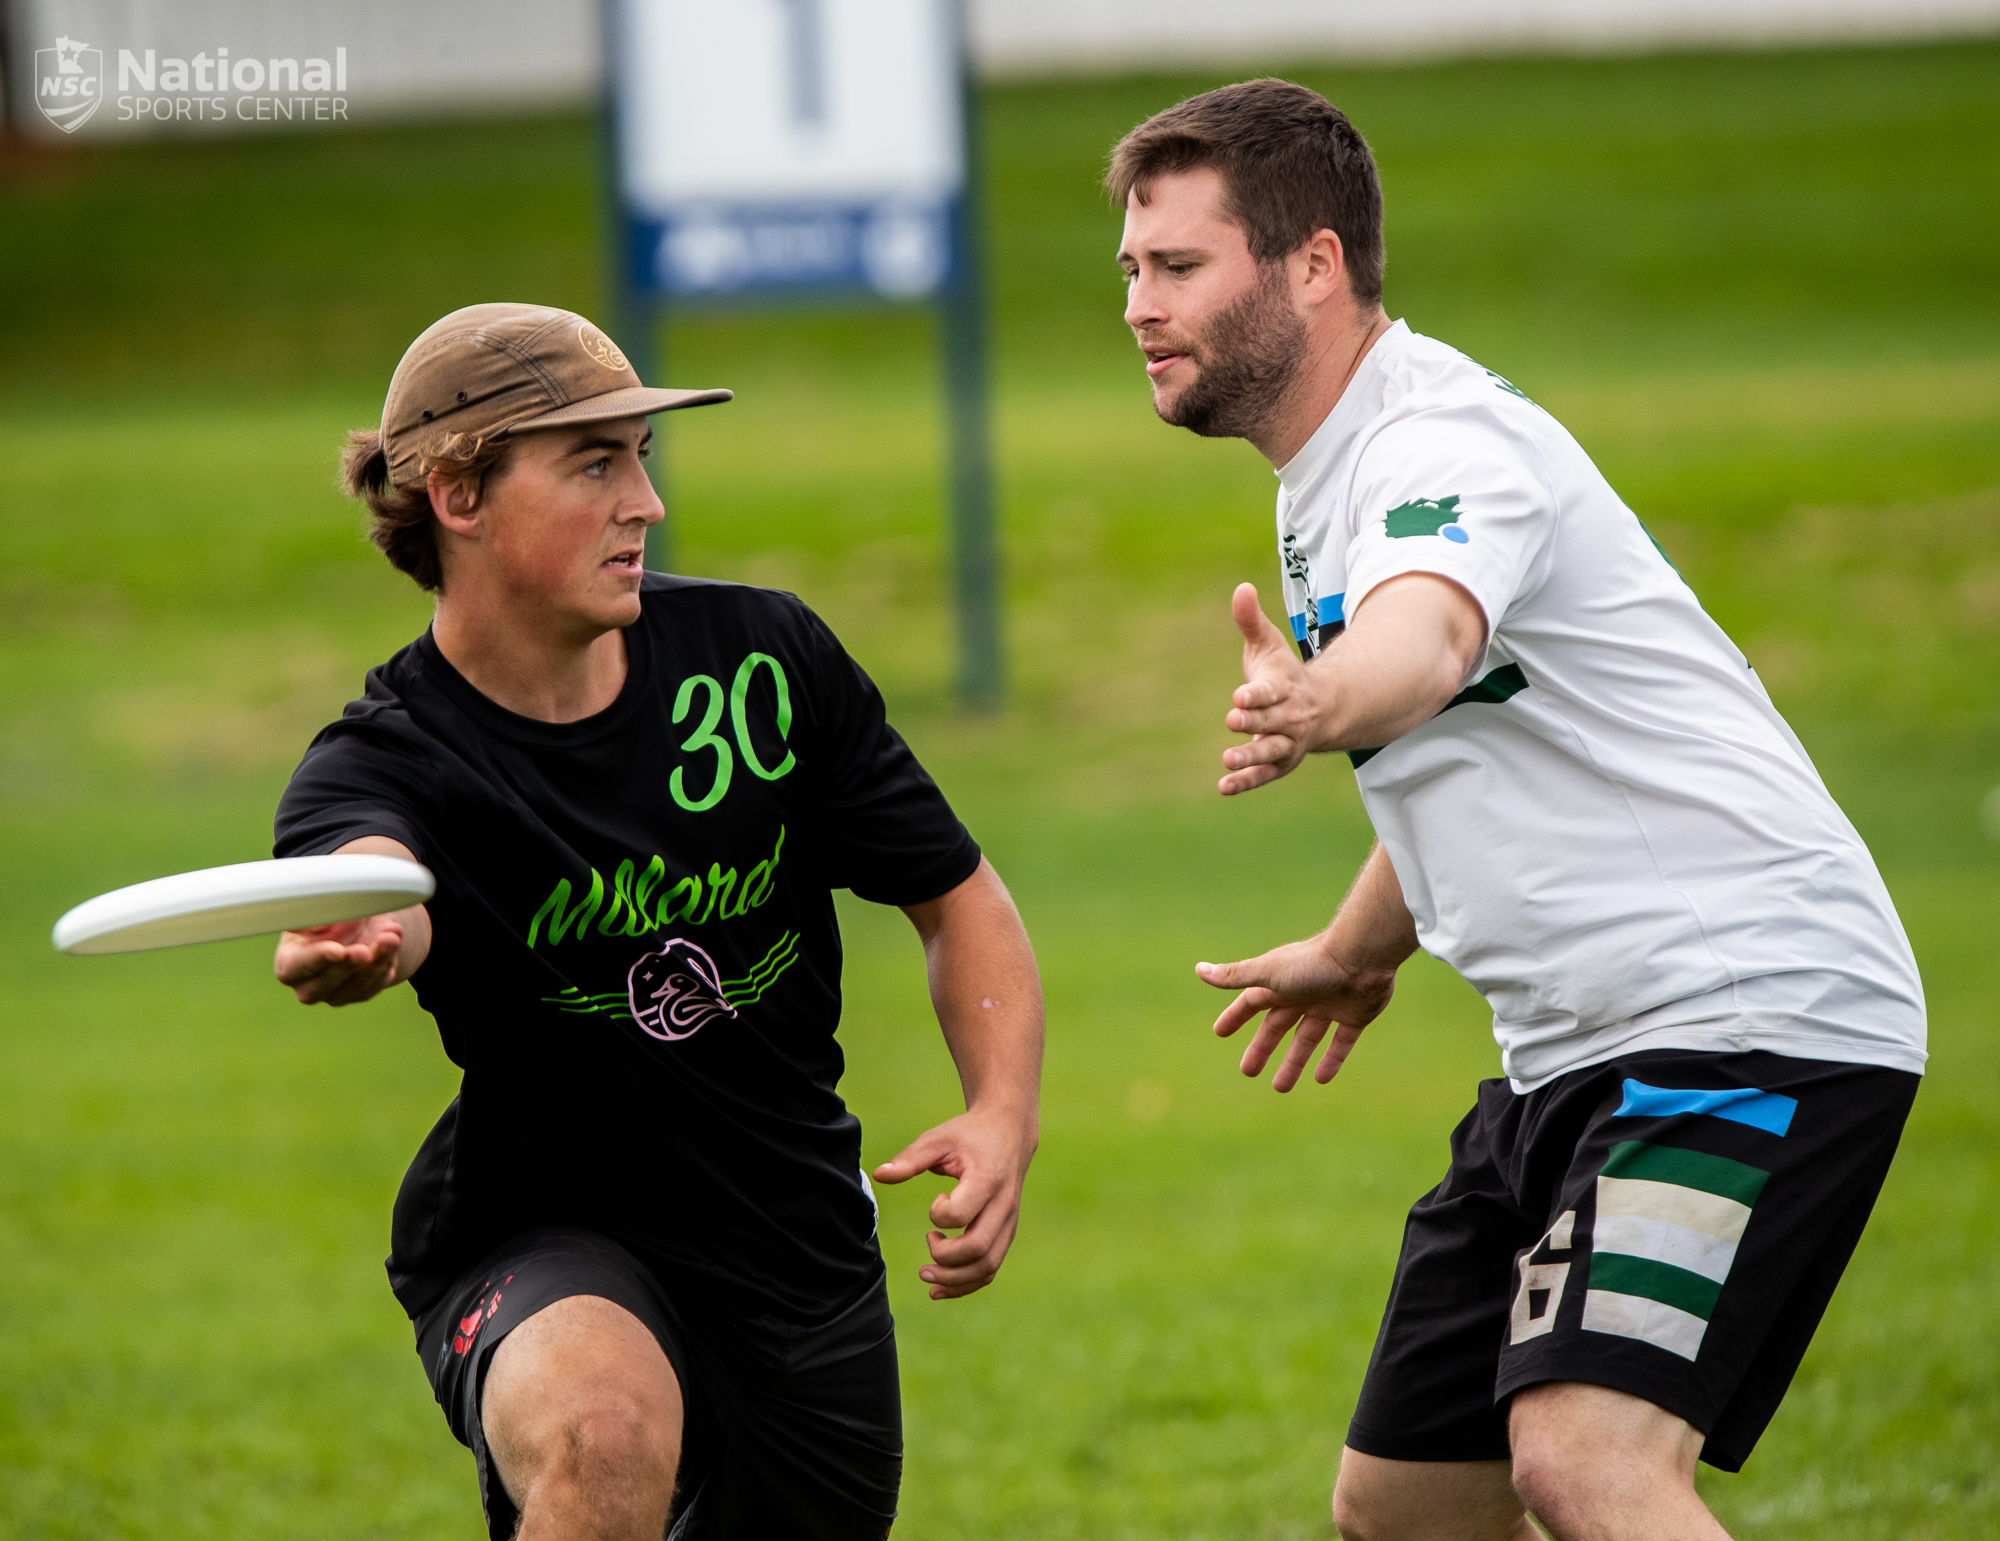 USA Ultimate Regionals at NSC 9.22.19-1-2